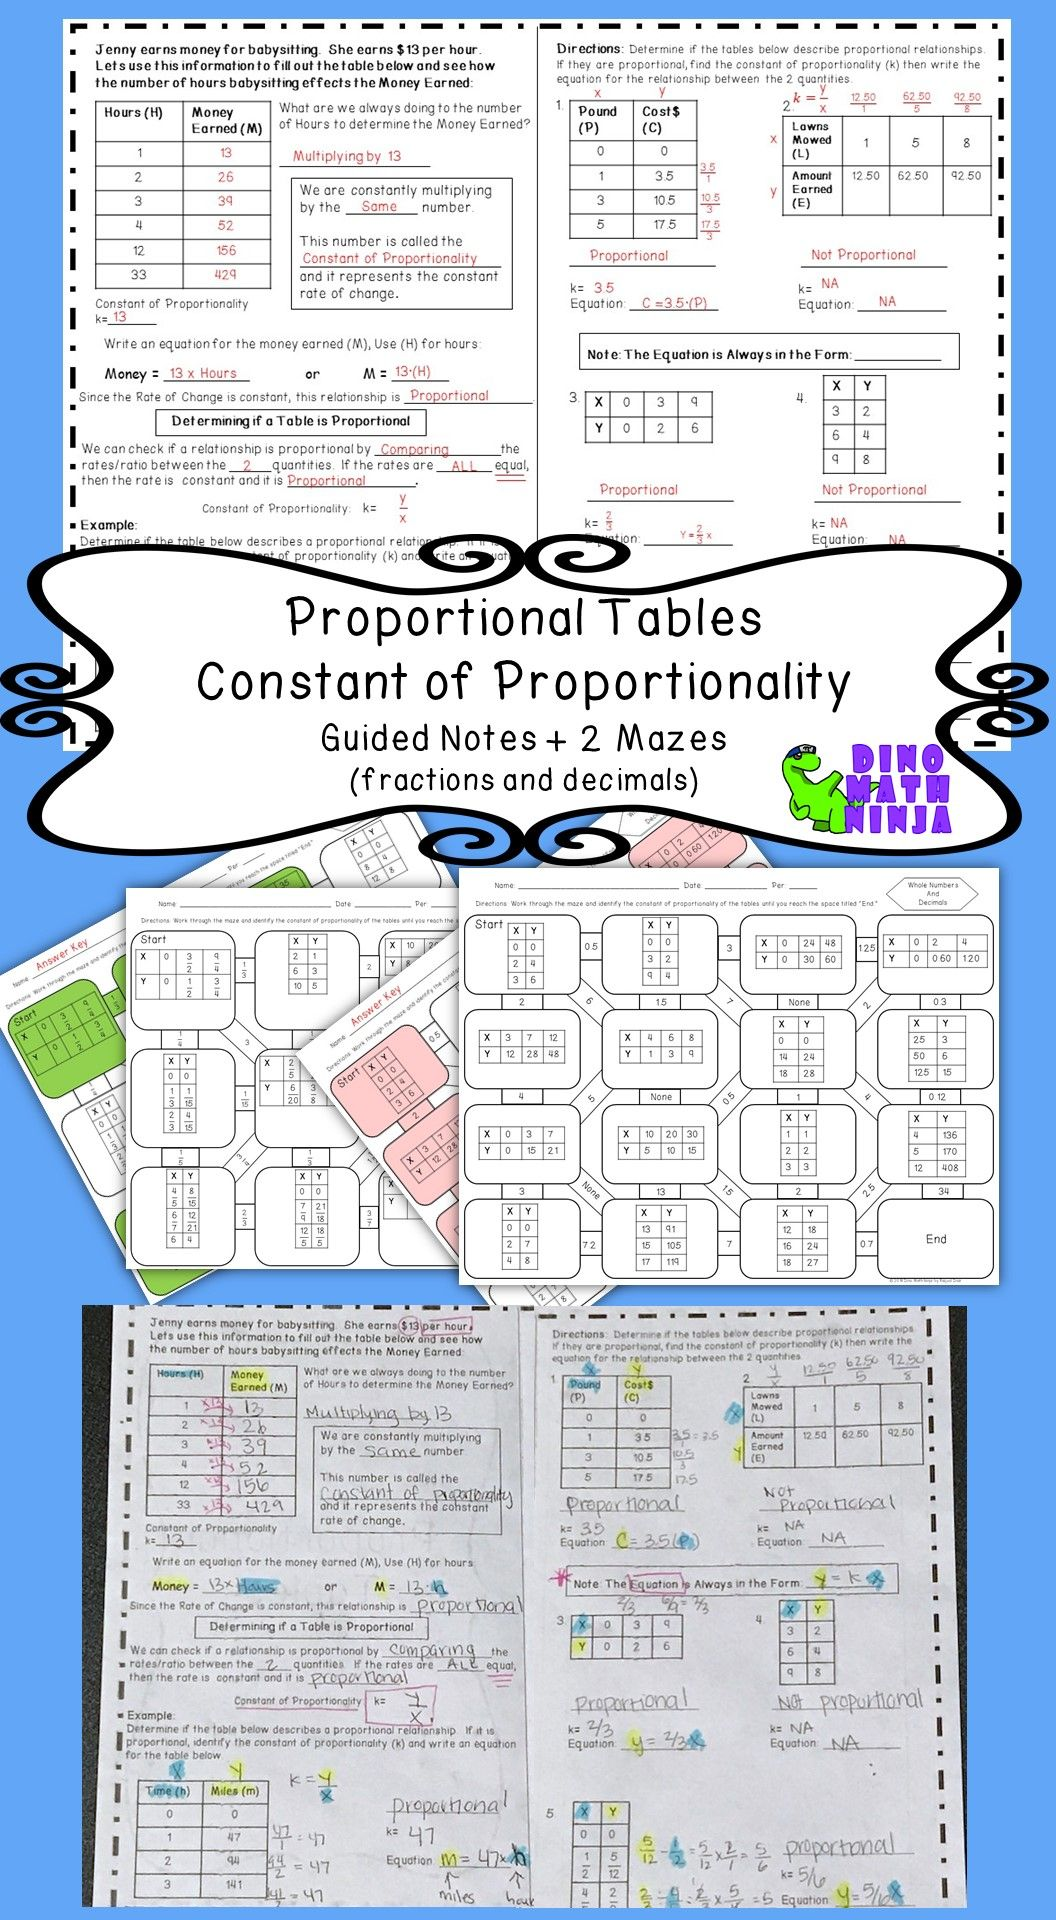 7 Rp Proportional Tables K Value Mazes Guided Notes Fractions And Decimals